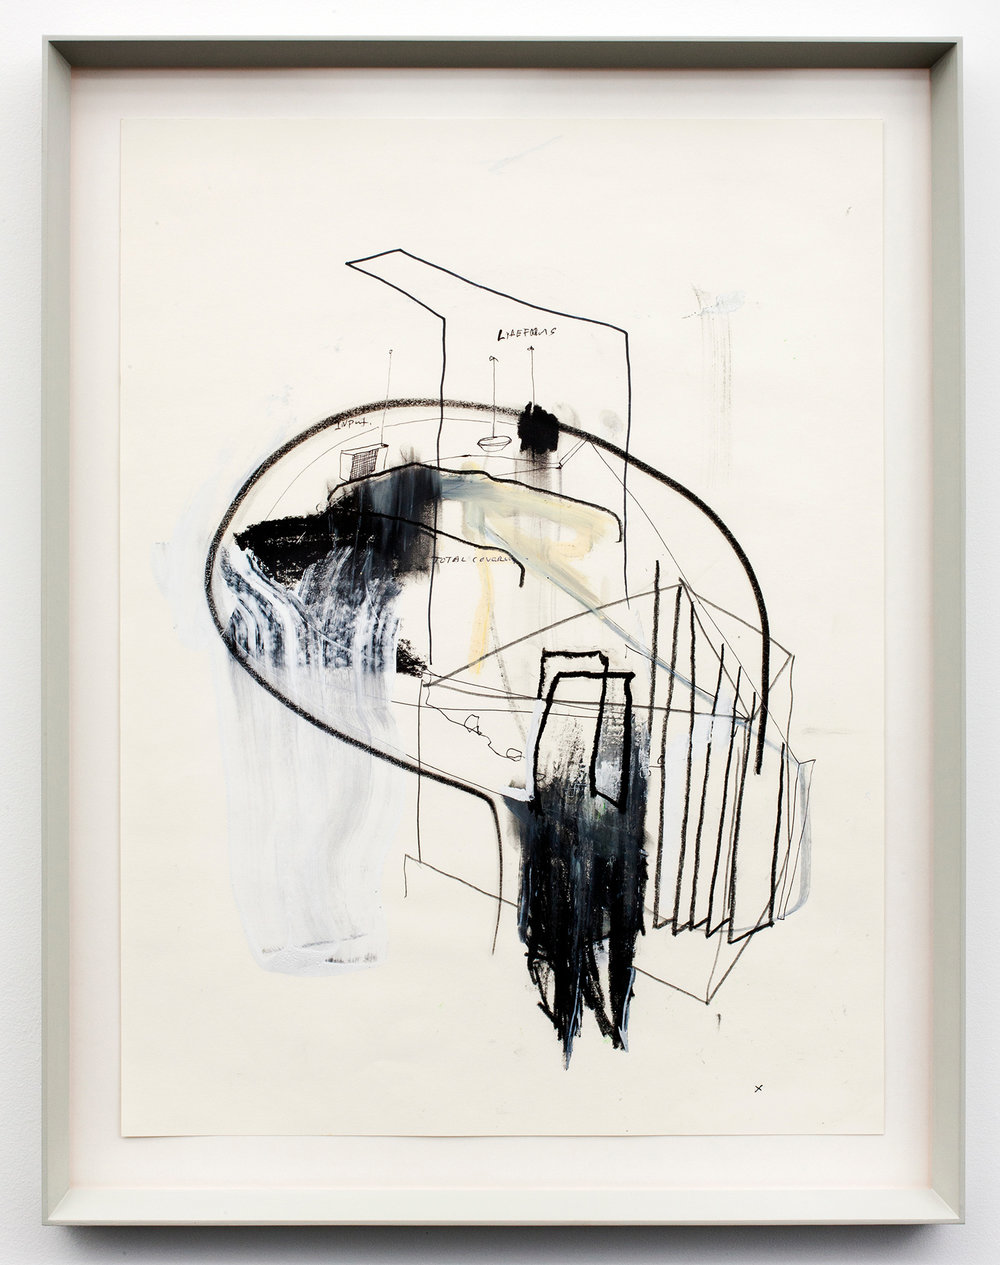 """Total Cover up .Graphite, oil stick, ink and correction fluid on paper. 27.5"""" x 21.25"""". 2012."""